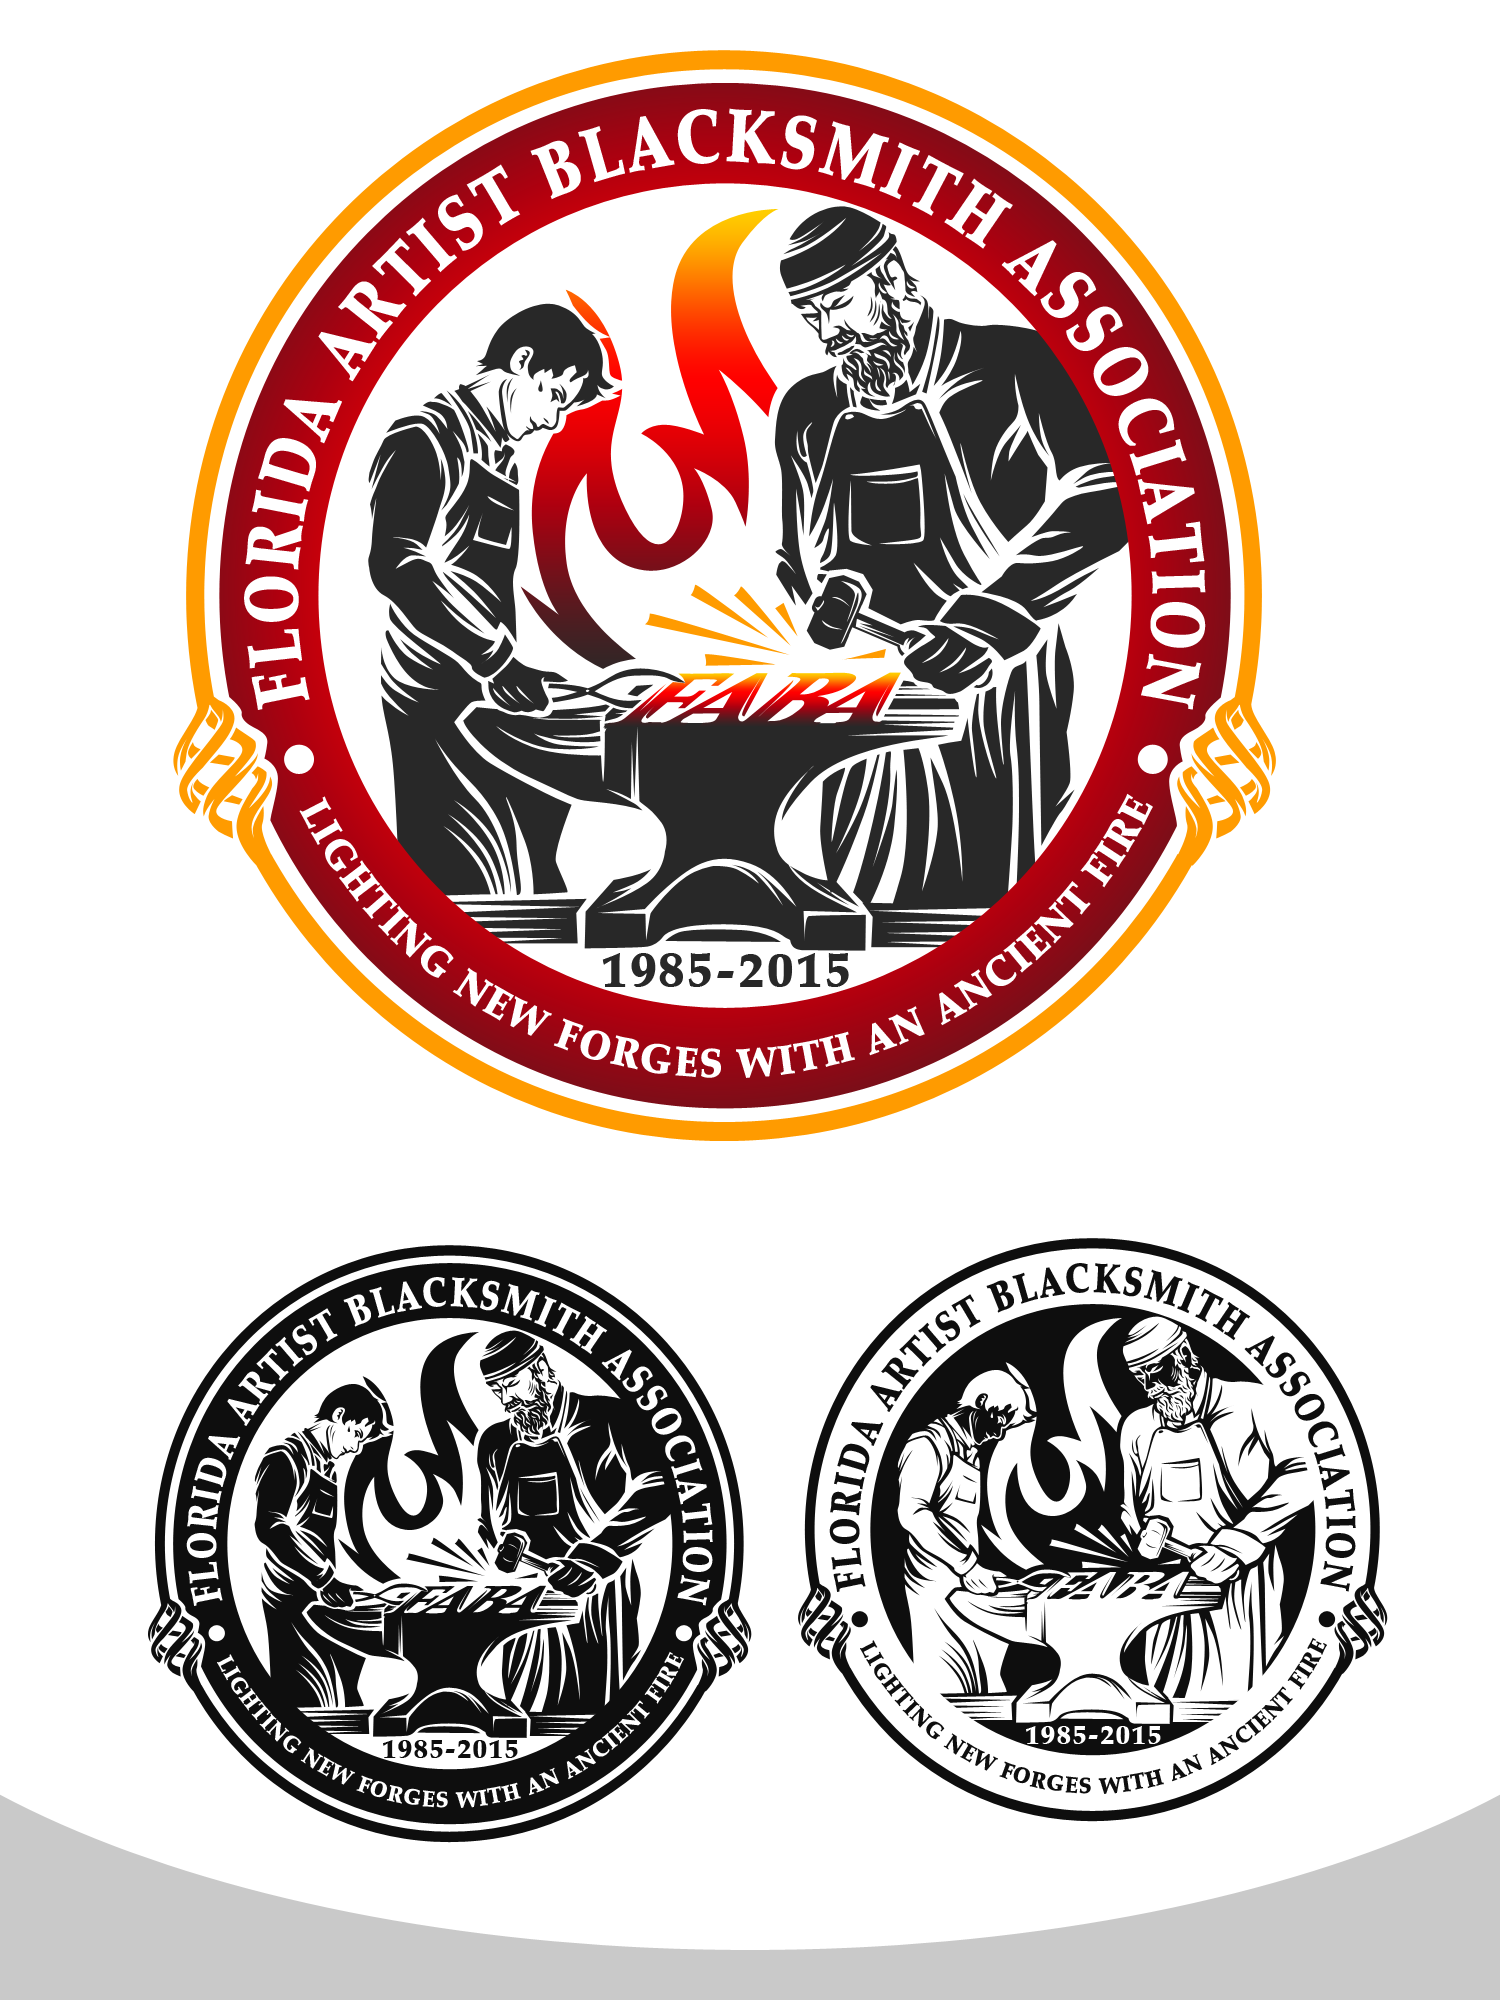 Create a logo for the 2015 FABA Annual Conference, a major teaching EVENT for blacksmiths.